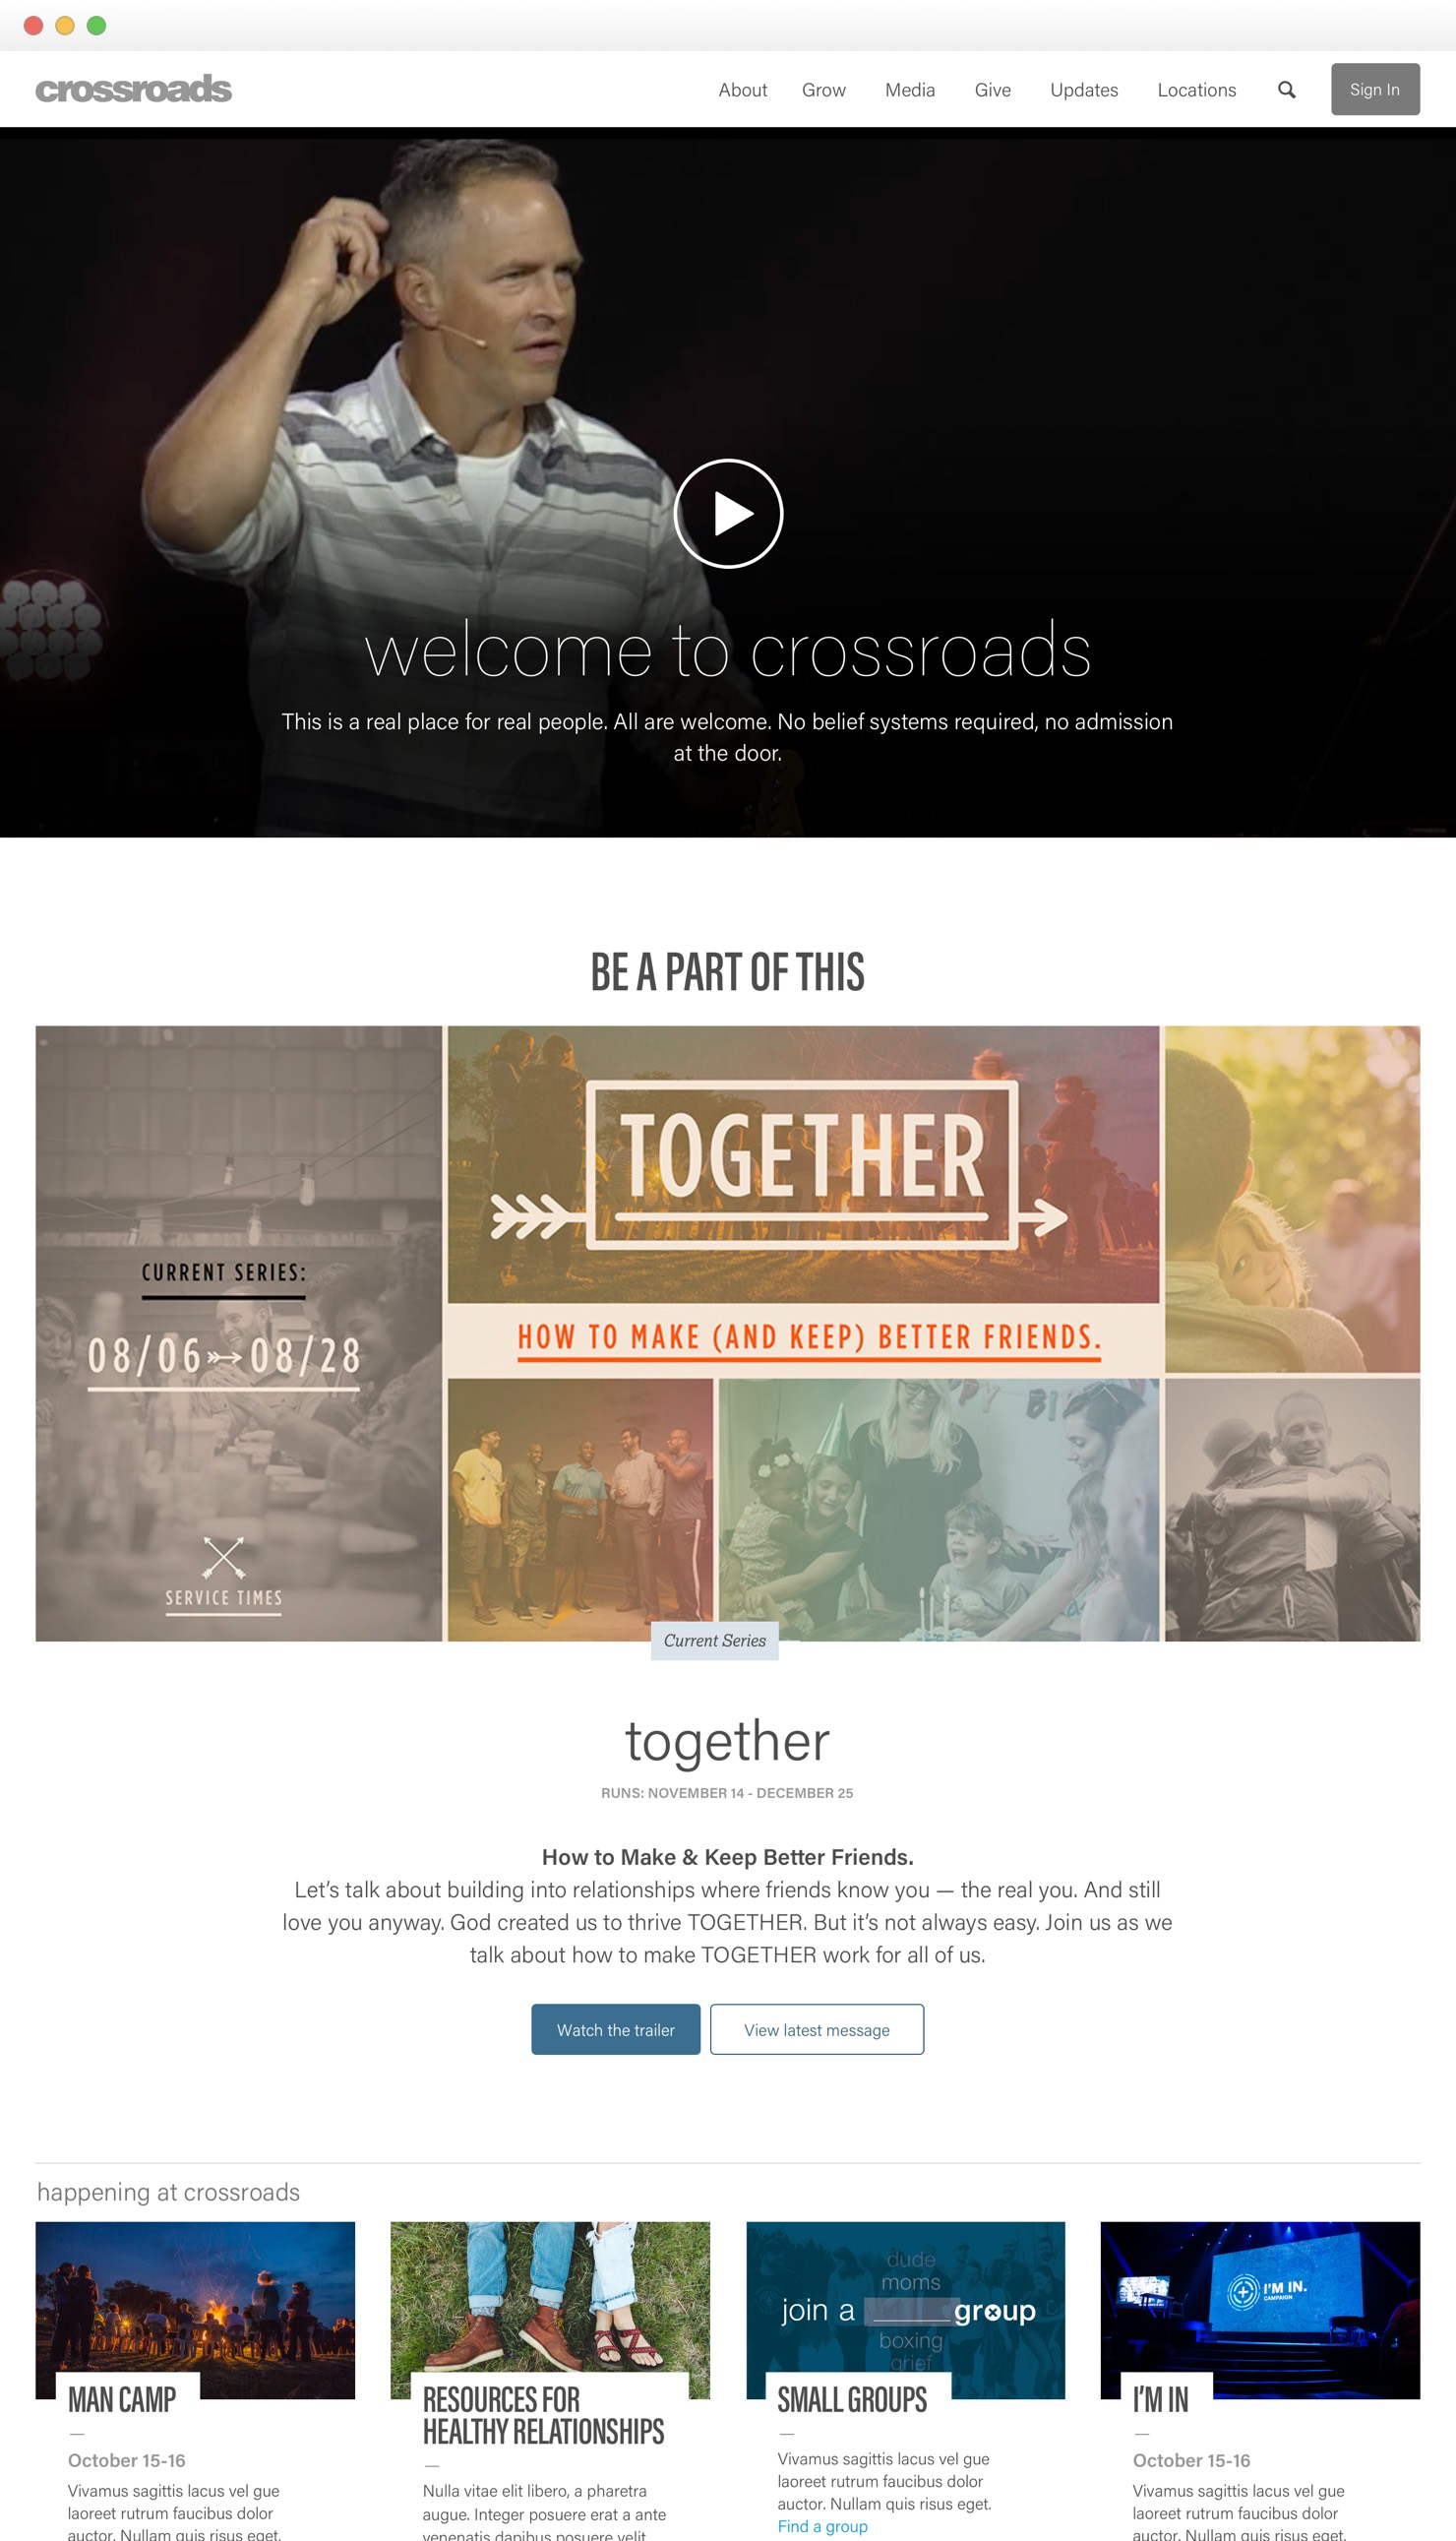 Crossroads Home page redesign